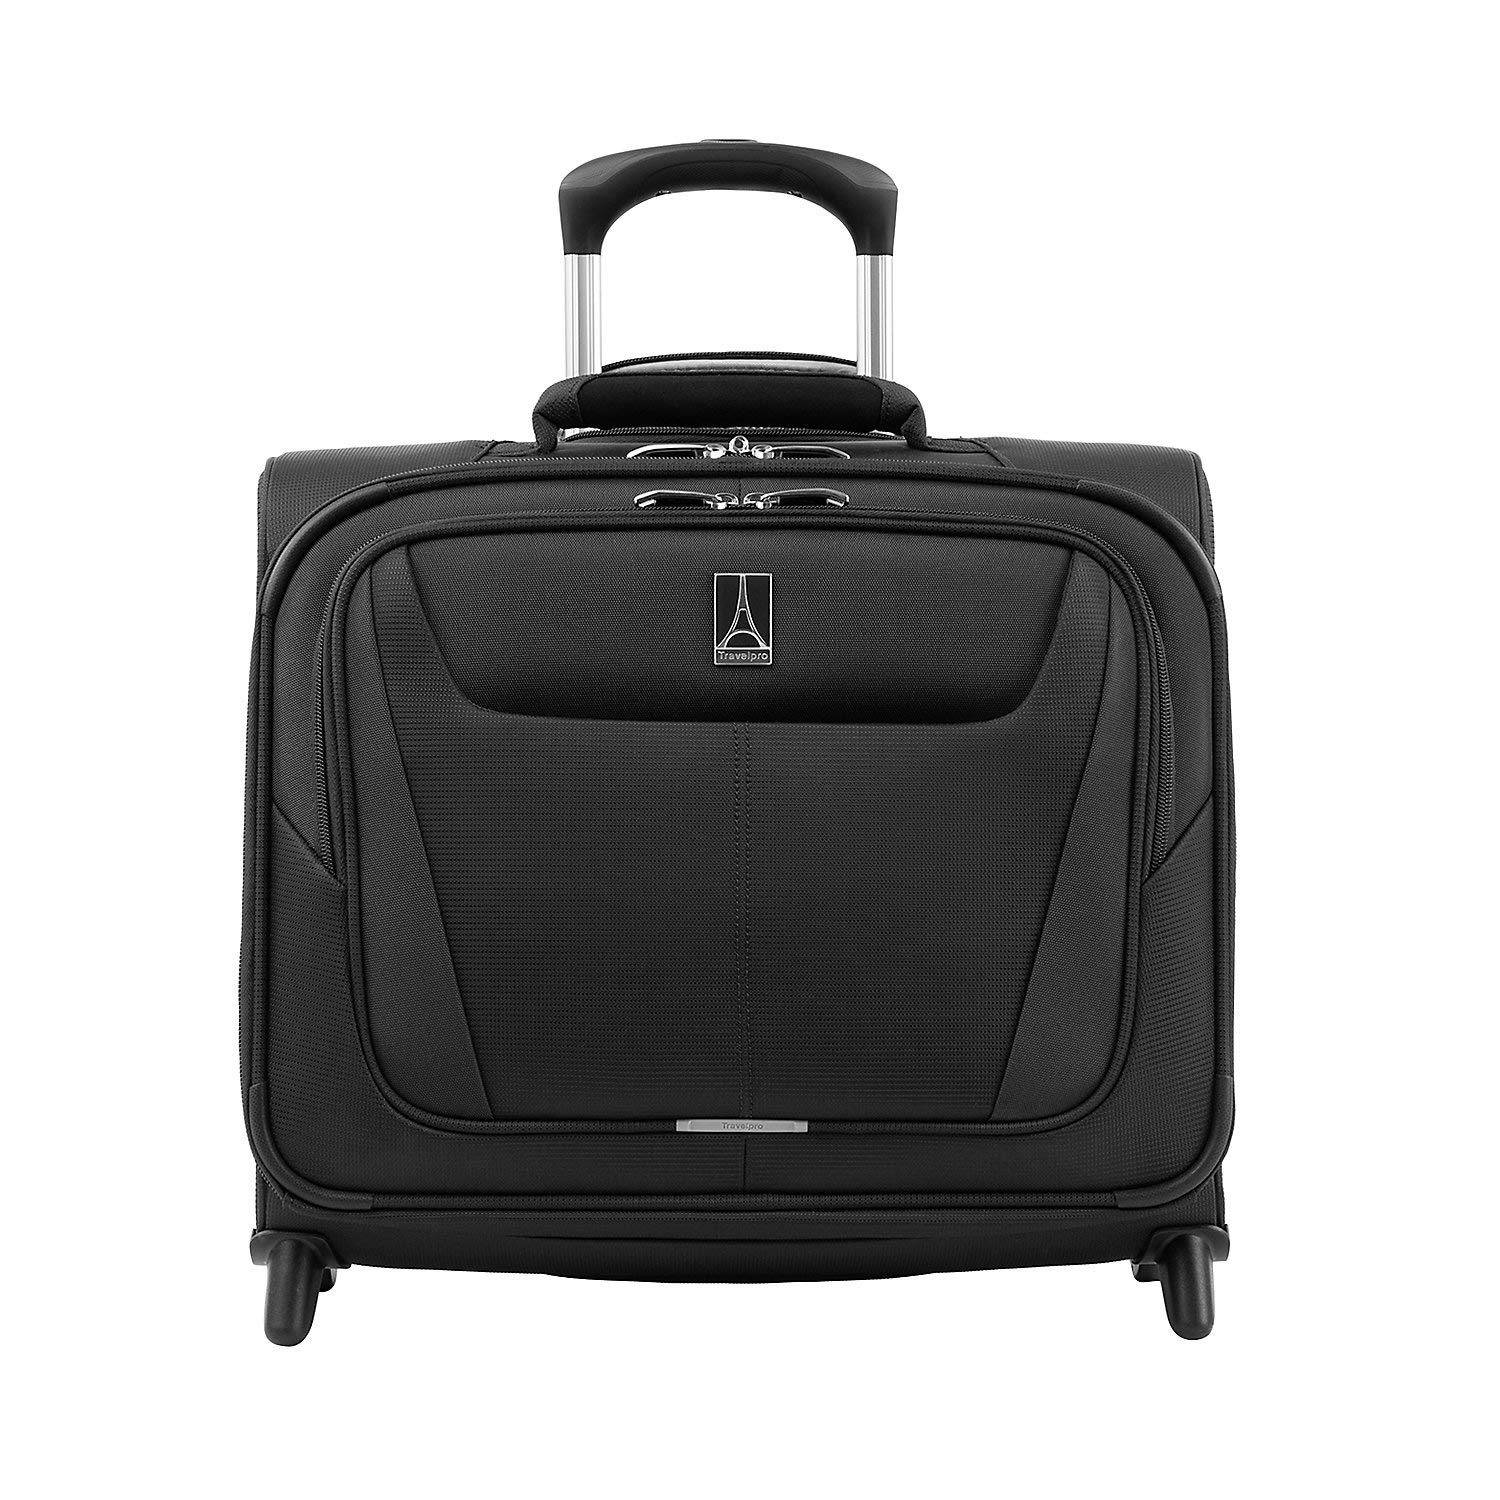 Travelpro Rolling Tote with 2 Wheels Carry-on Maxlite 5 Extra Small 32 Liter Polyester